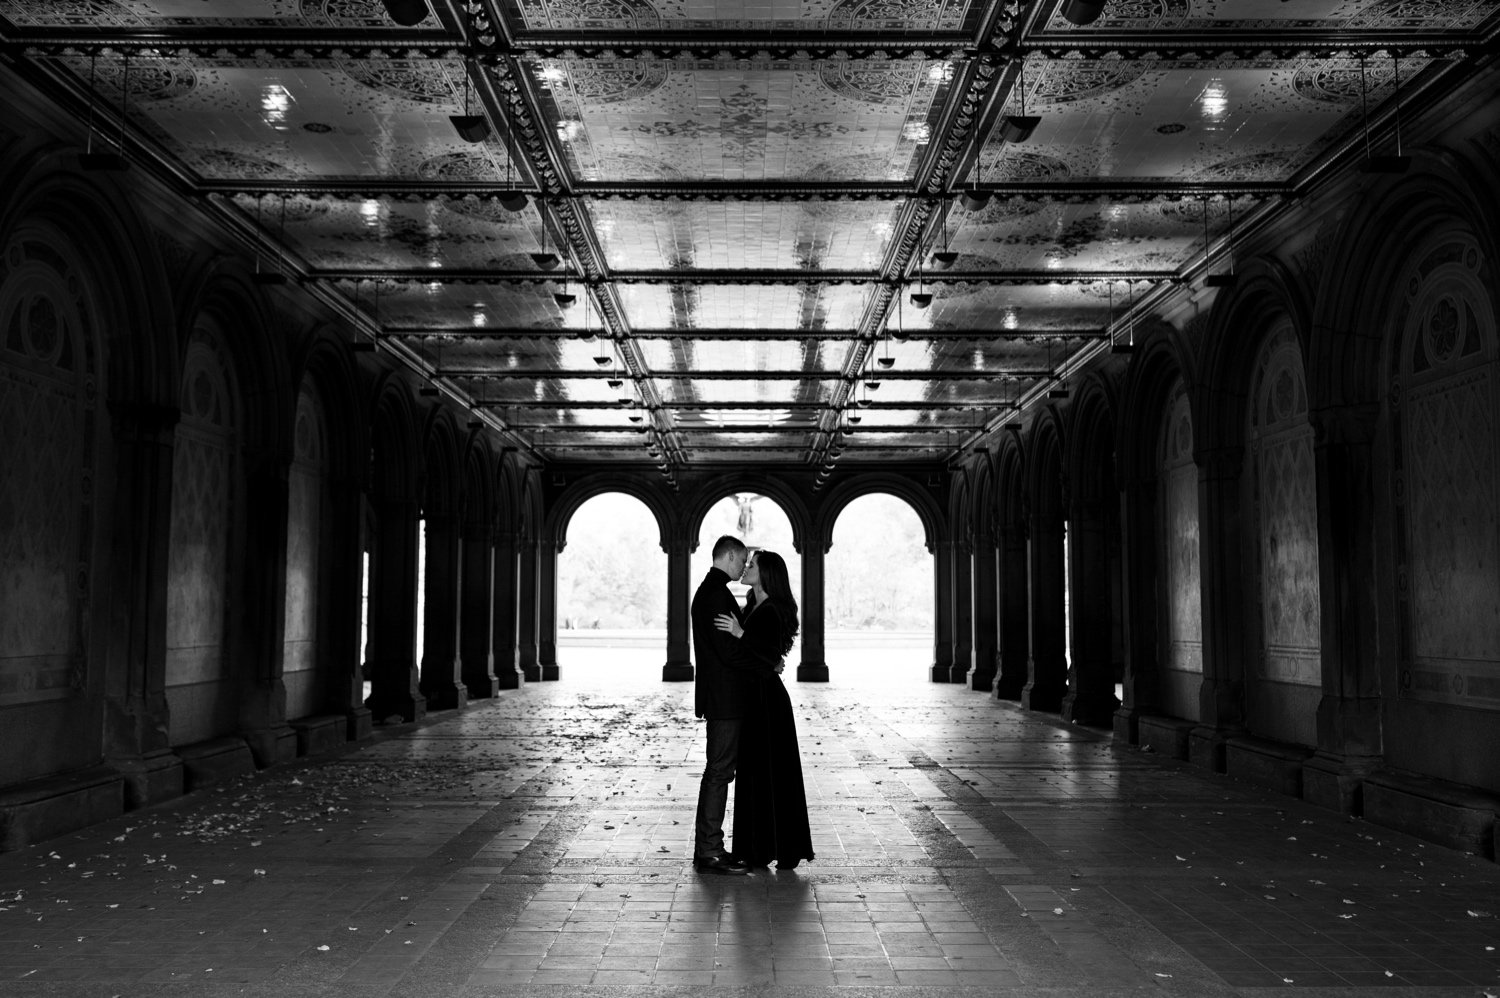 luxury manhattan wedding photographer, best wedding photographers in new york city, best manhattan wedding photographer, high end weddings new york, where should i have my engagement session in new york city, best brooklyn wedding photographers, luxury weddings in brooklyn, wedding galleries in central park, central park engagement session